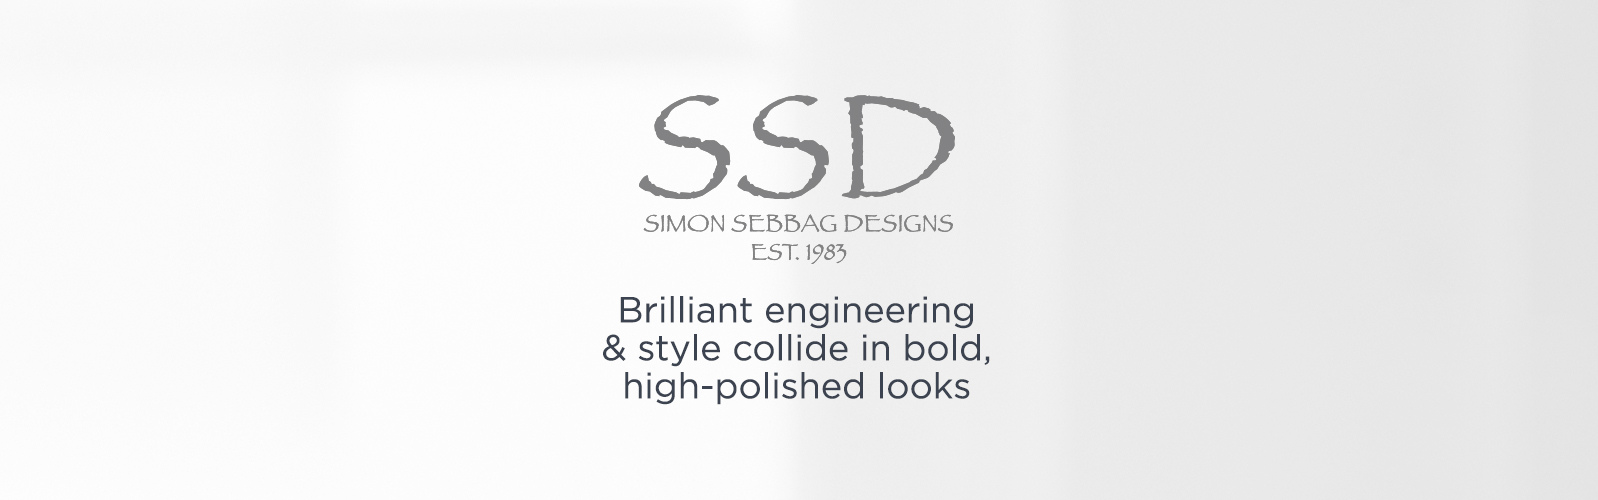 Simon Sebbag Jewelry Designs.  Brilliant engineering & style collide in bold, high-polished looks